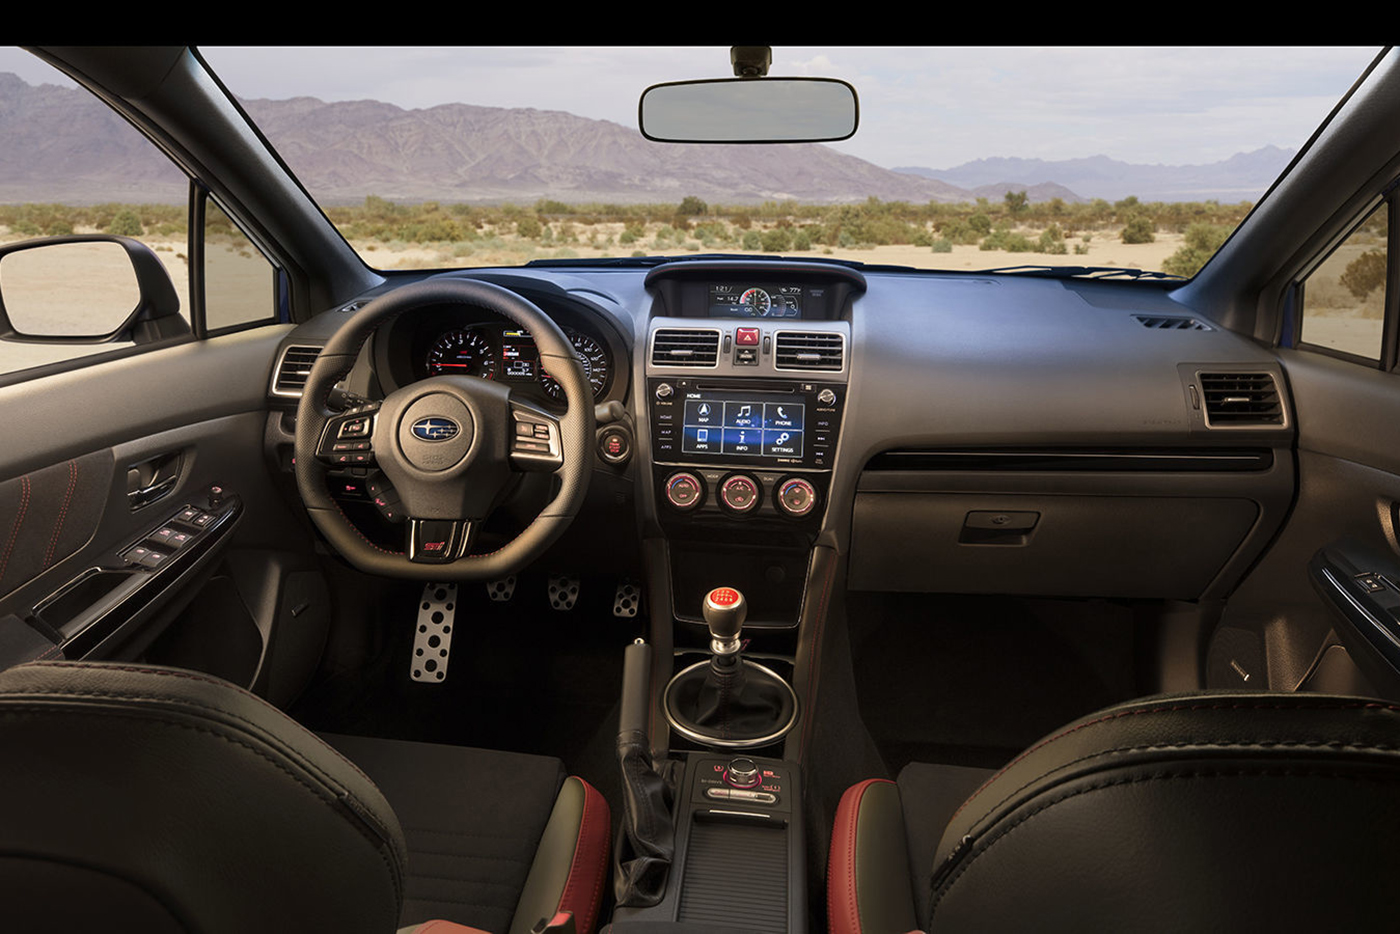 gallery-1483637150-2018-sti-interior.jpg